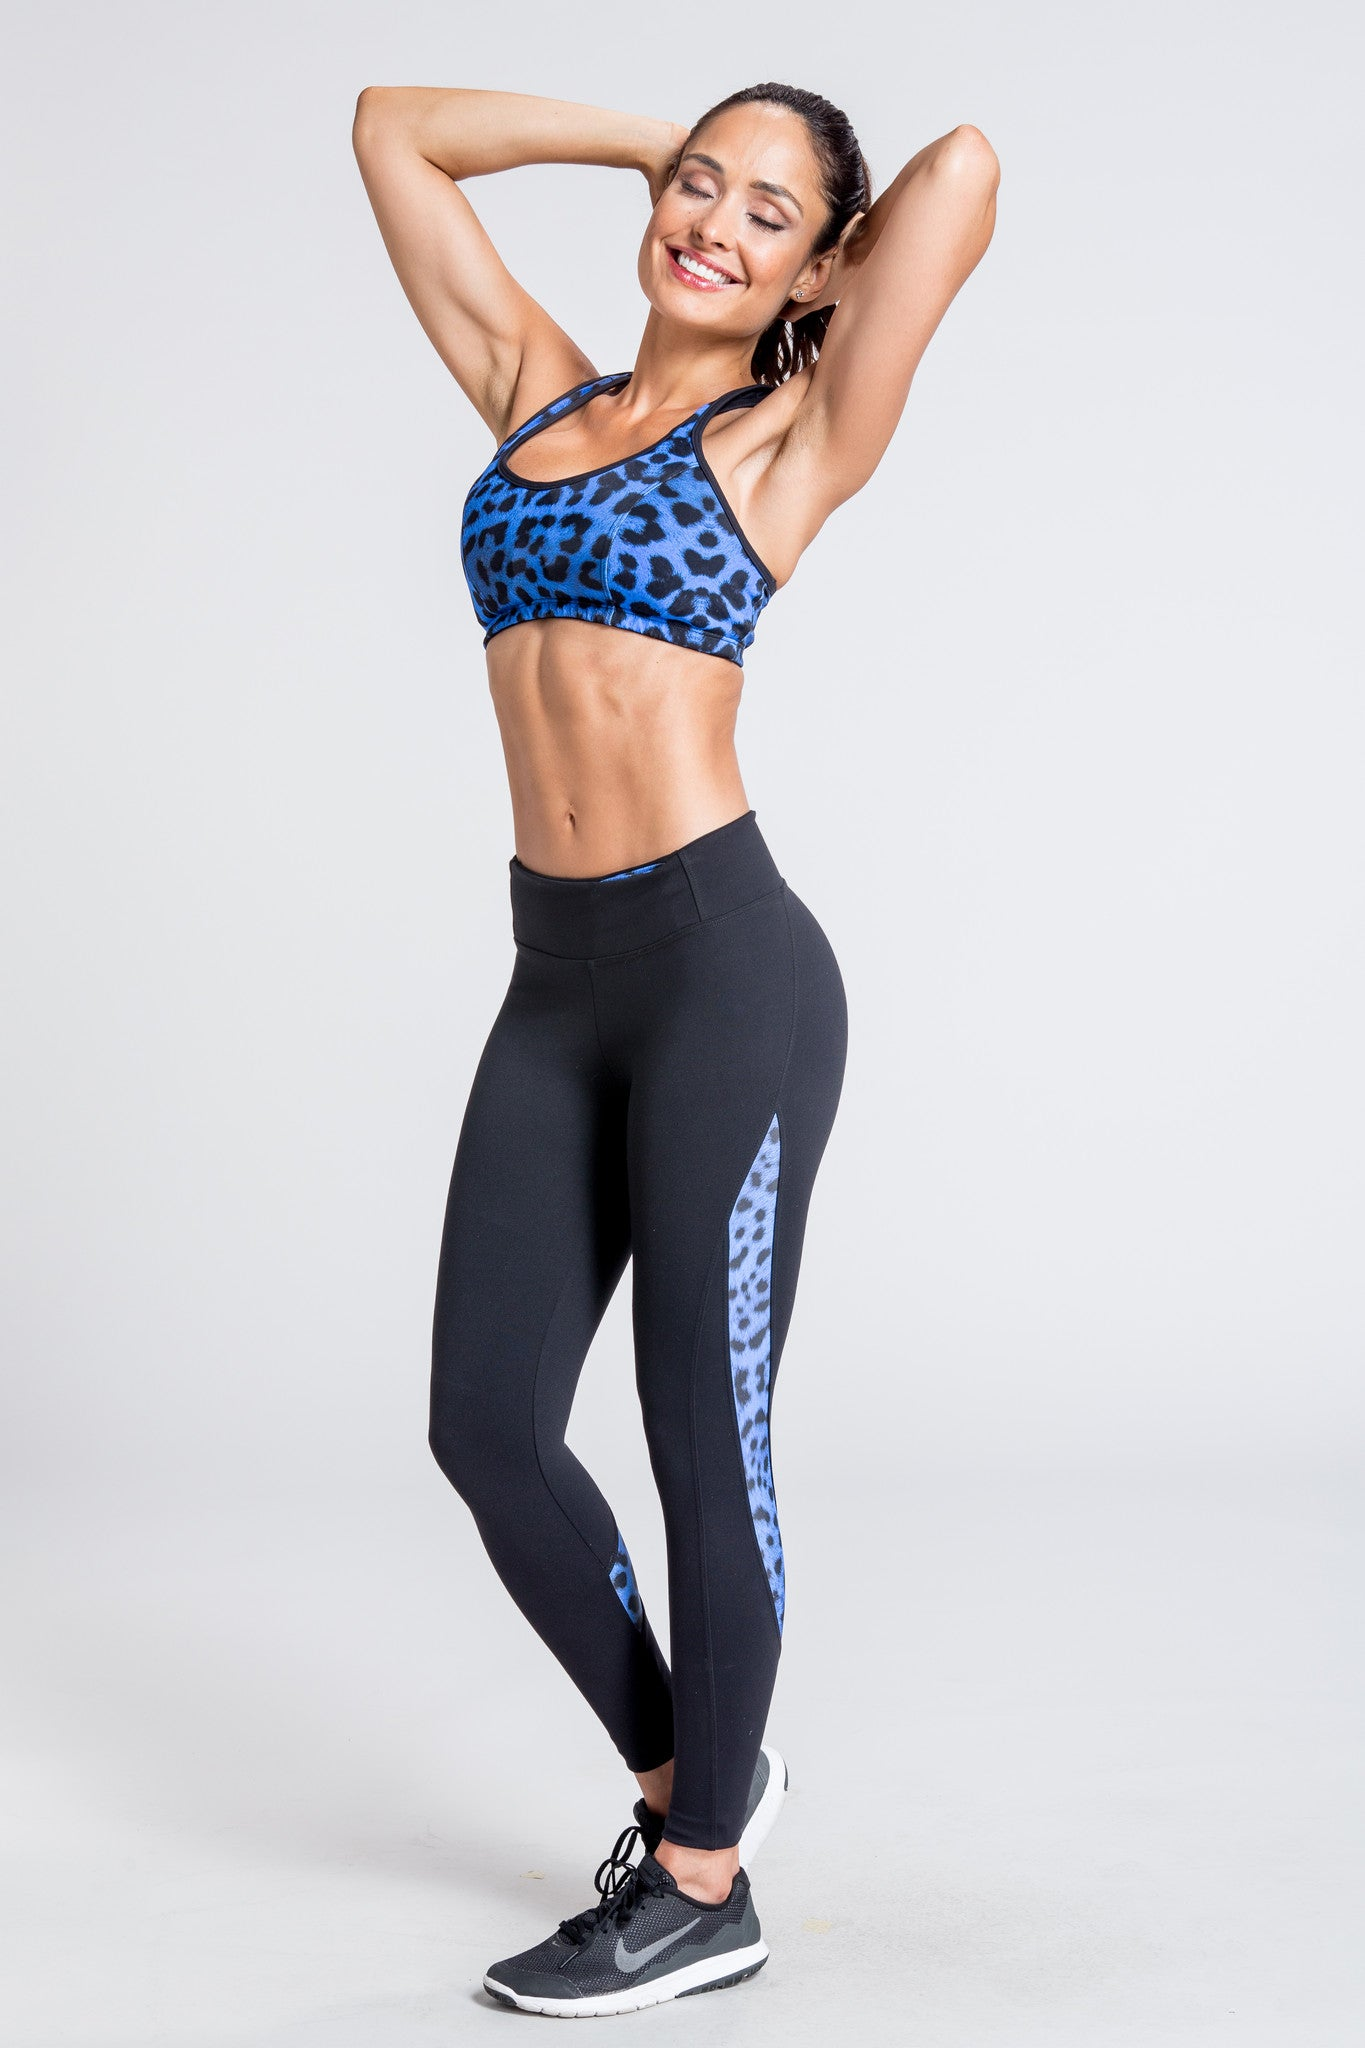 Posh Pounce Legging - Royal Leopard / Black